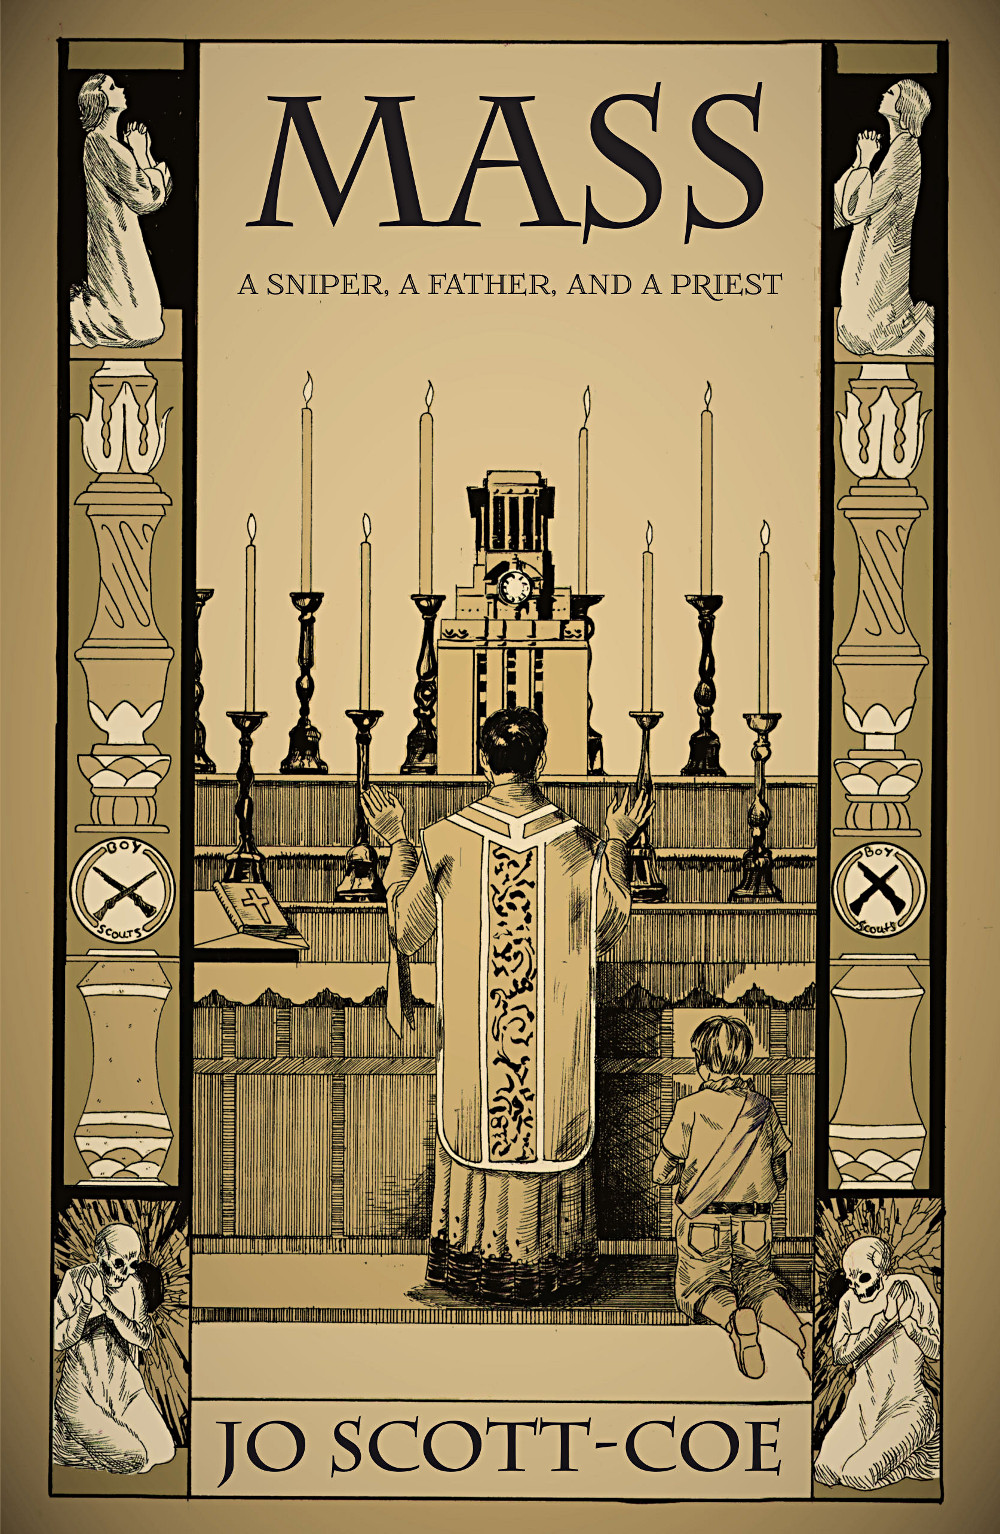 MASS: A Sniper, a Father, and a Priest